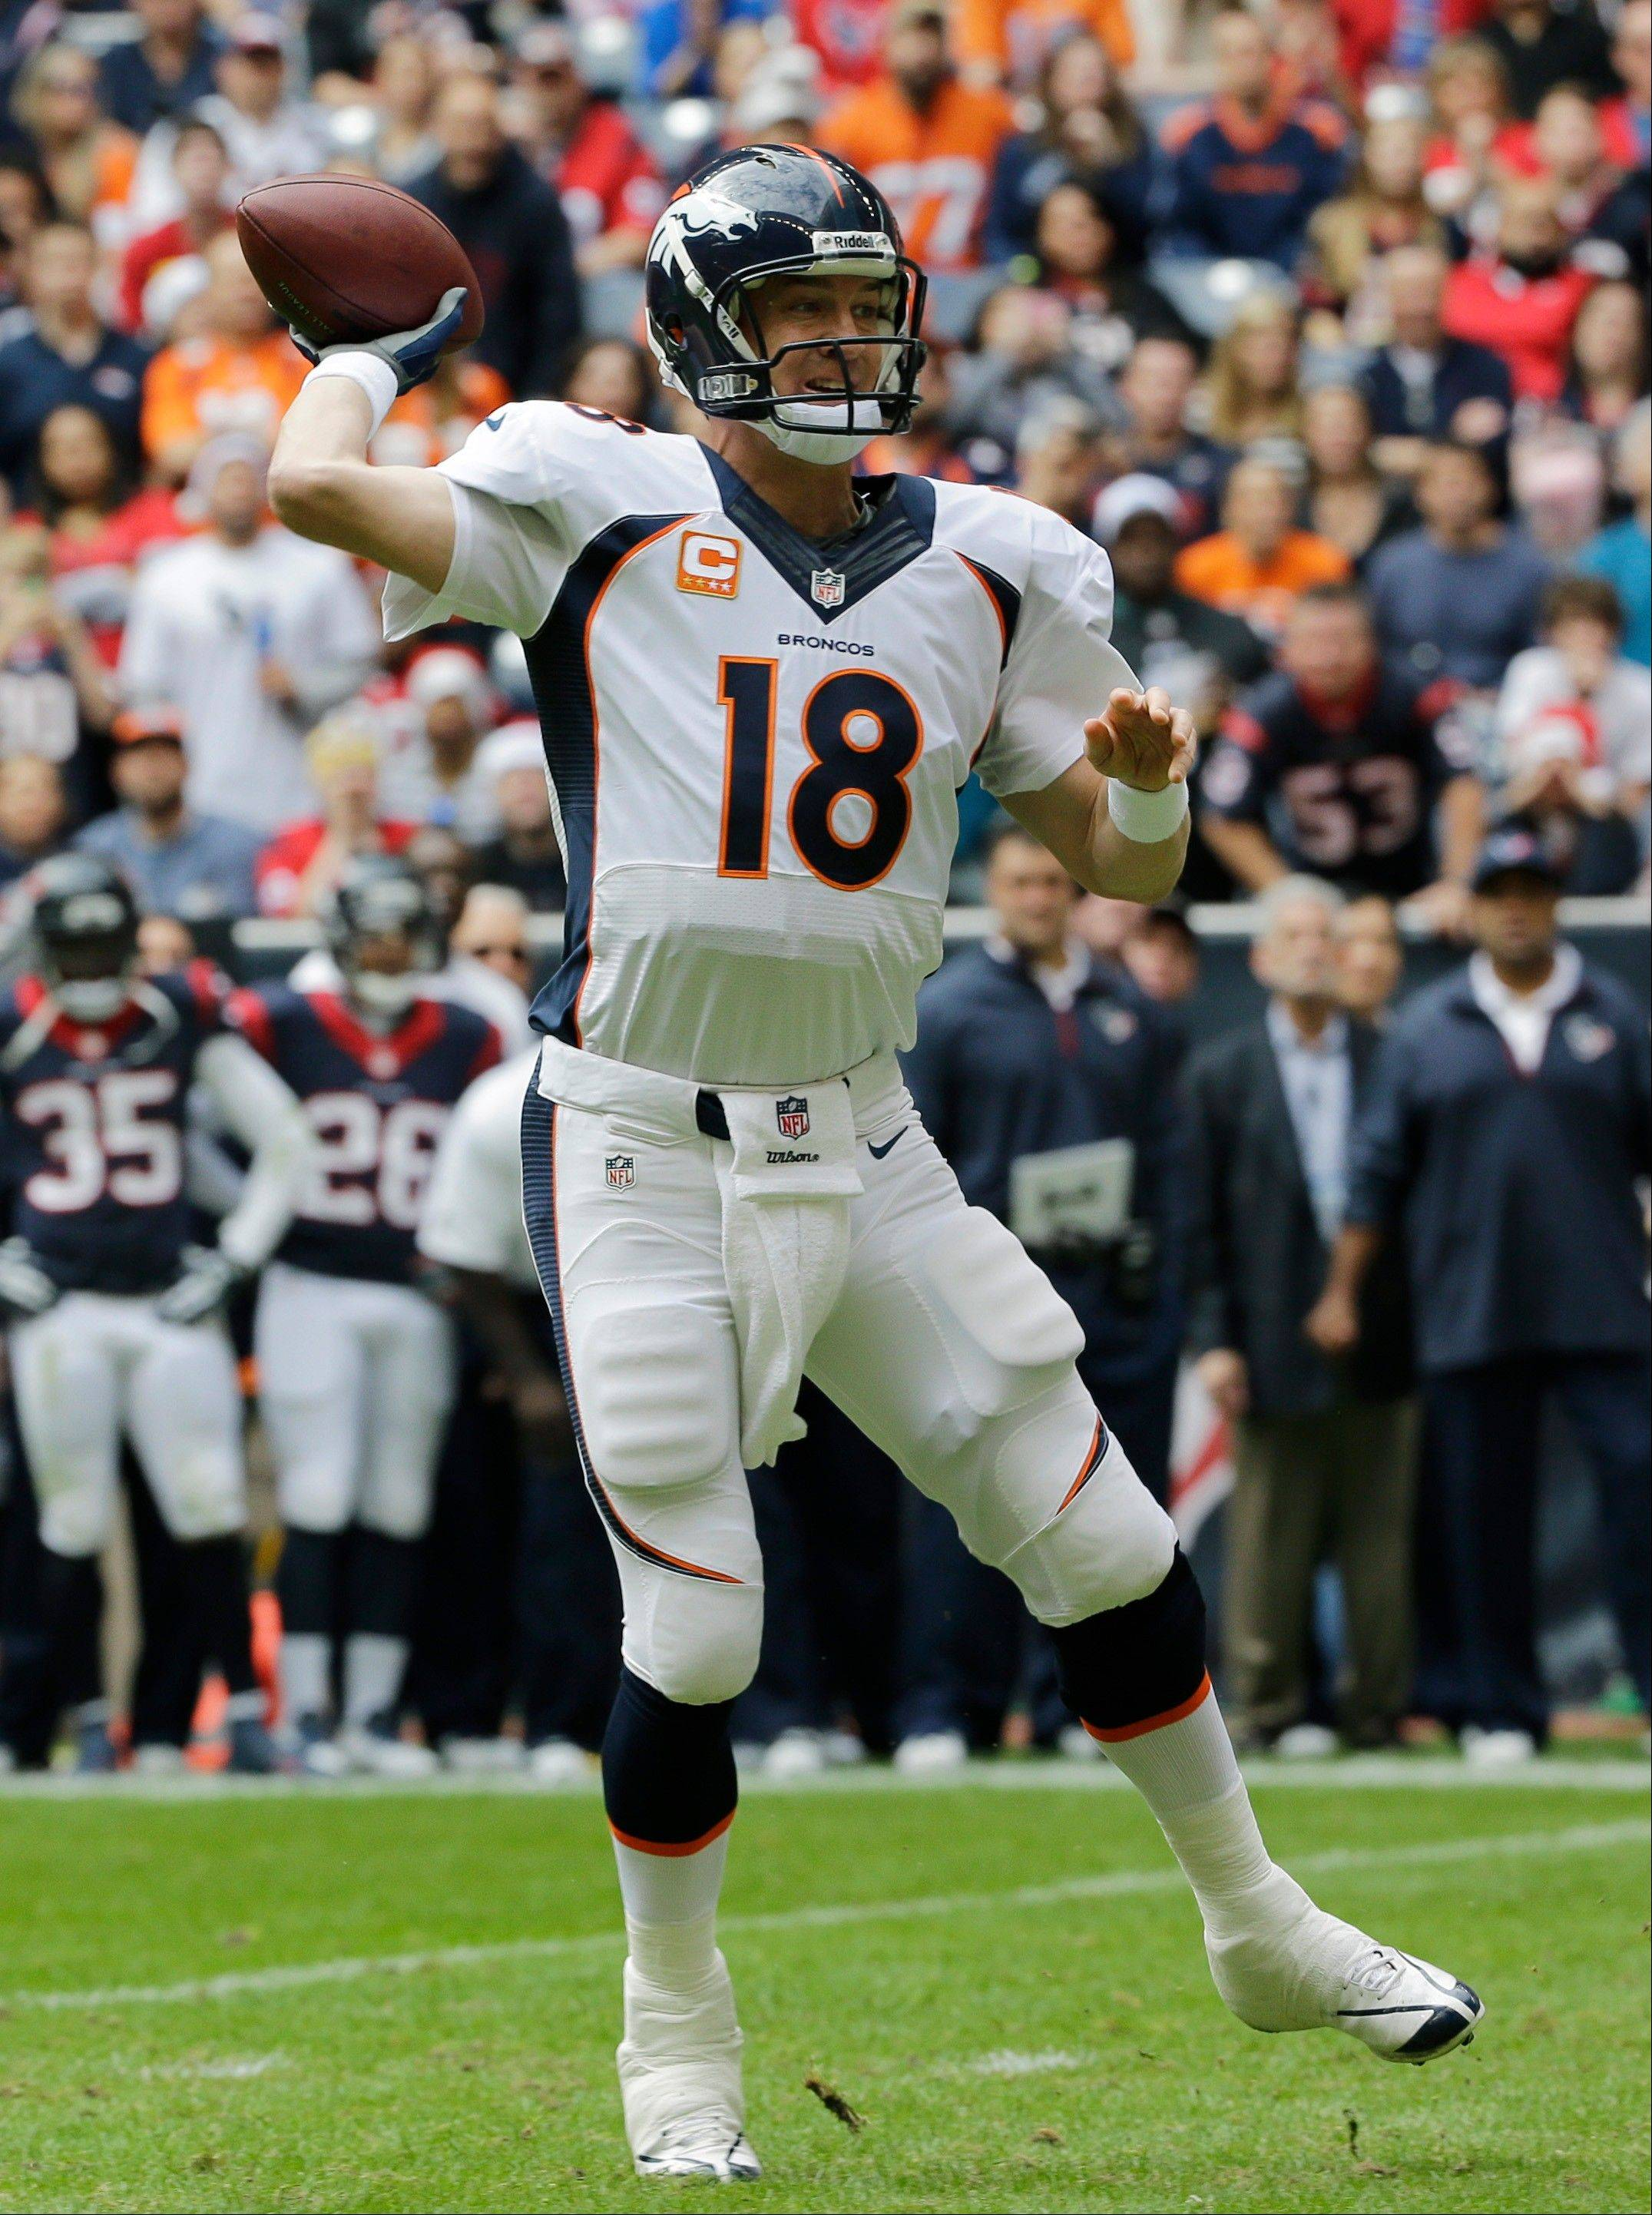 After breaking Tom Brady's single-season touchdown record of 50 on Sunday, Denver QB Peyton Manning is 266 yards from breaking Drew Brees' single-season mark for yards passing.